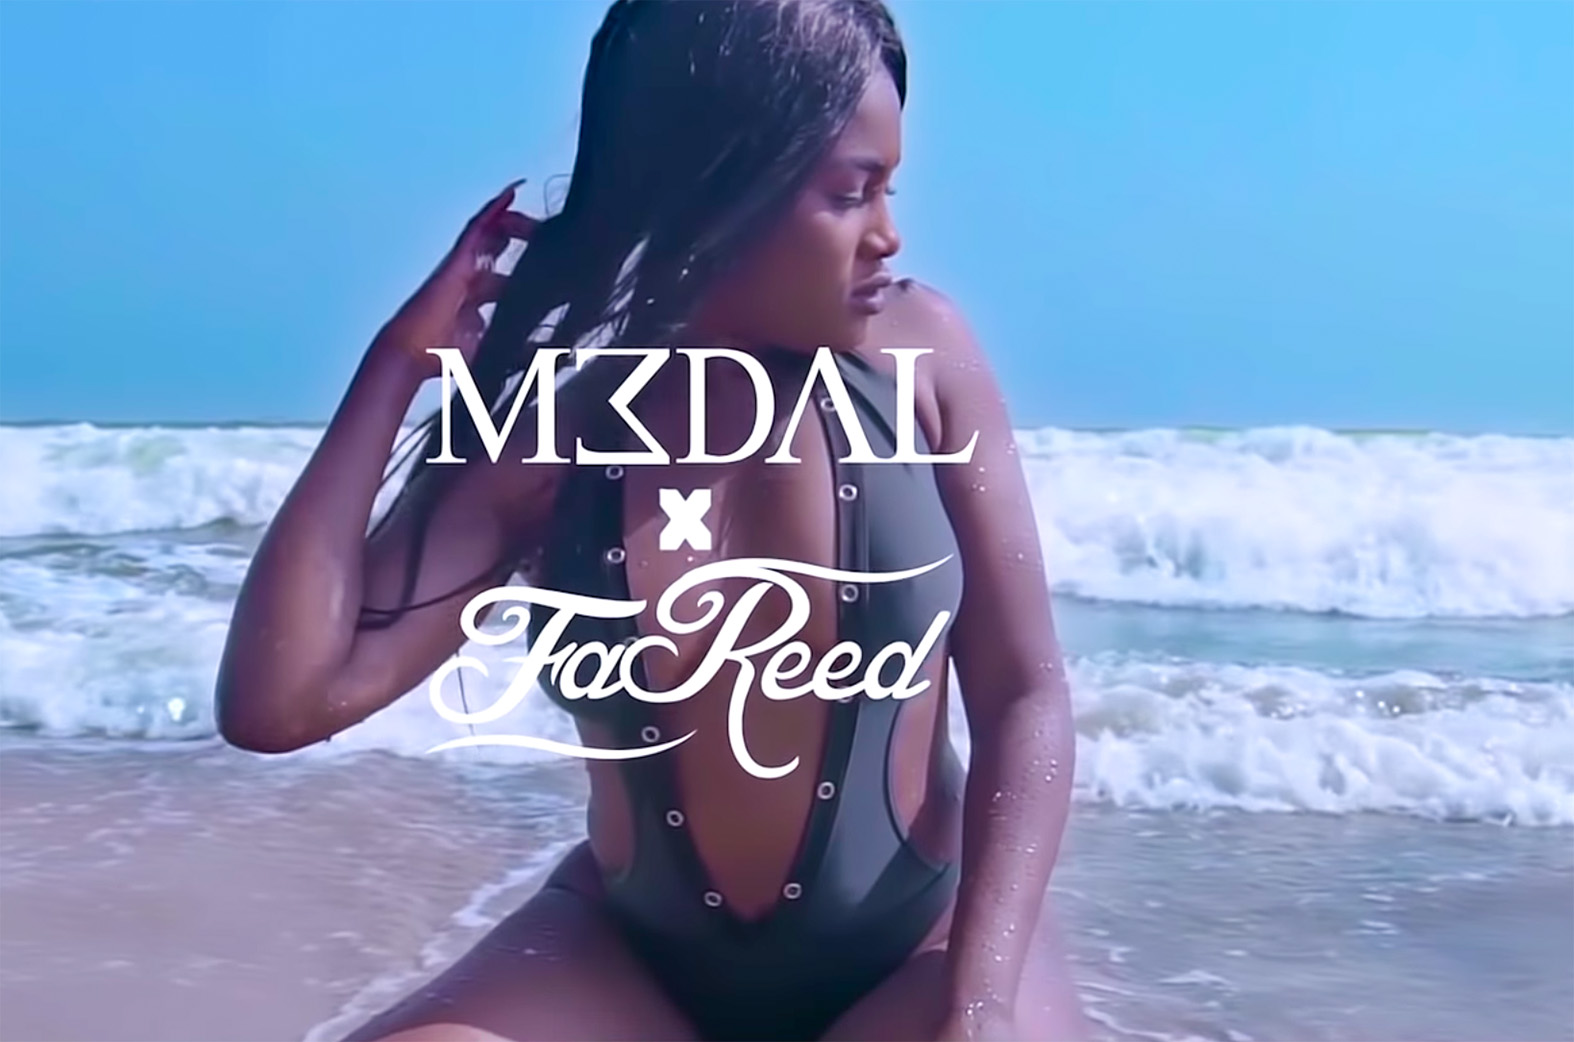 Video: Odo Lastic by M3dal & Fareed